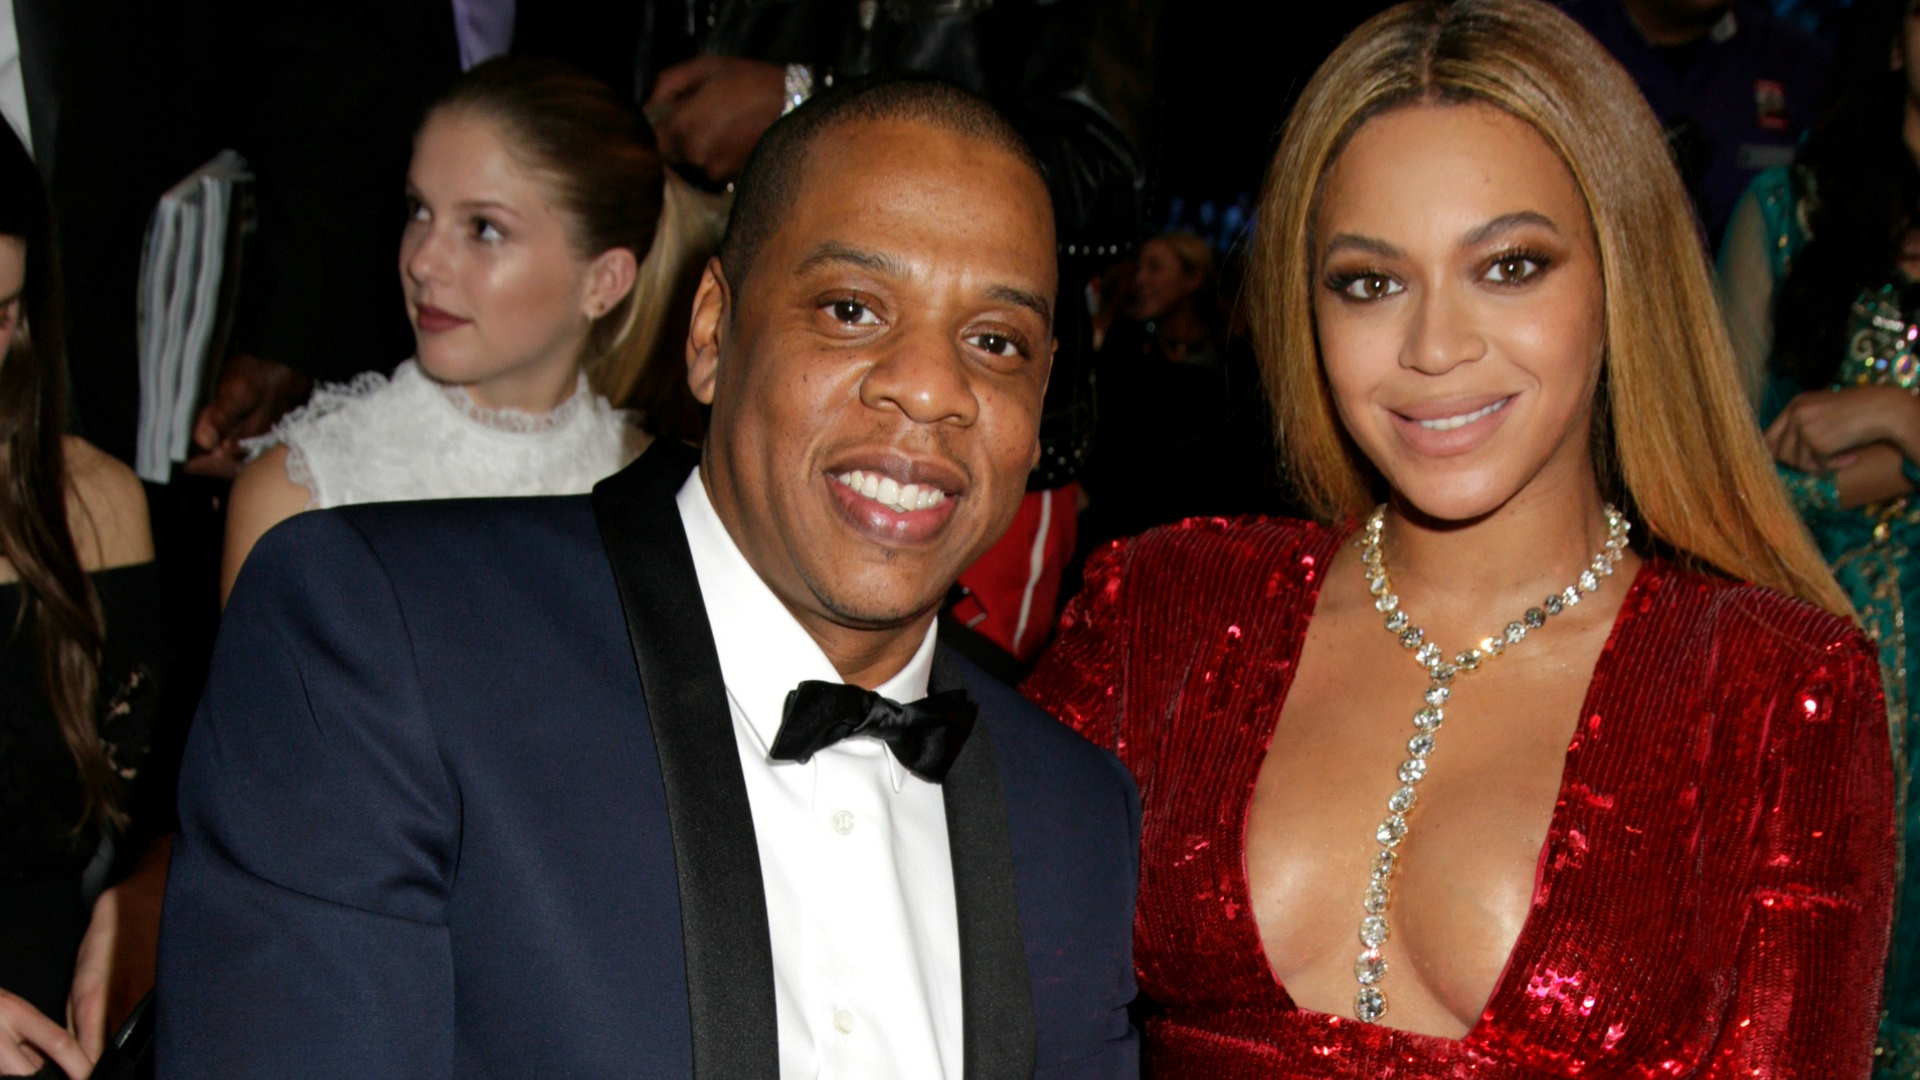 It's only fitting that Jay Z and Beyoncé snagged front-row seats at Music's Biggest Night®.